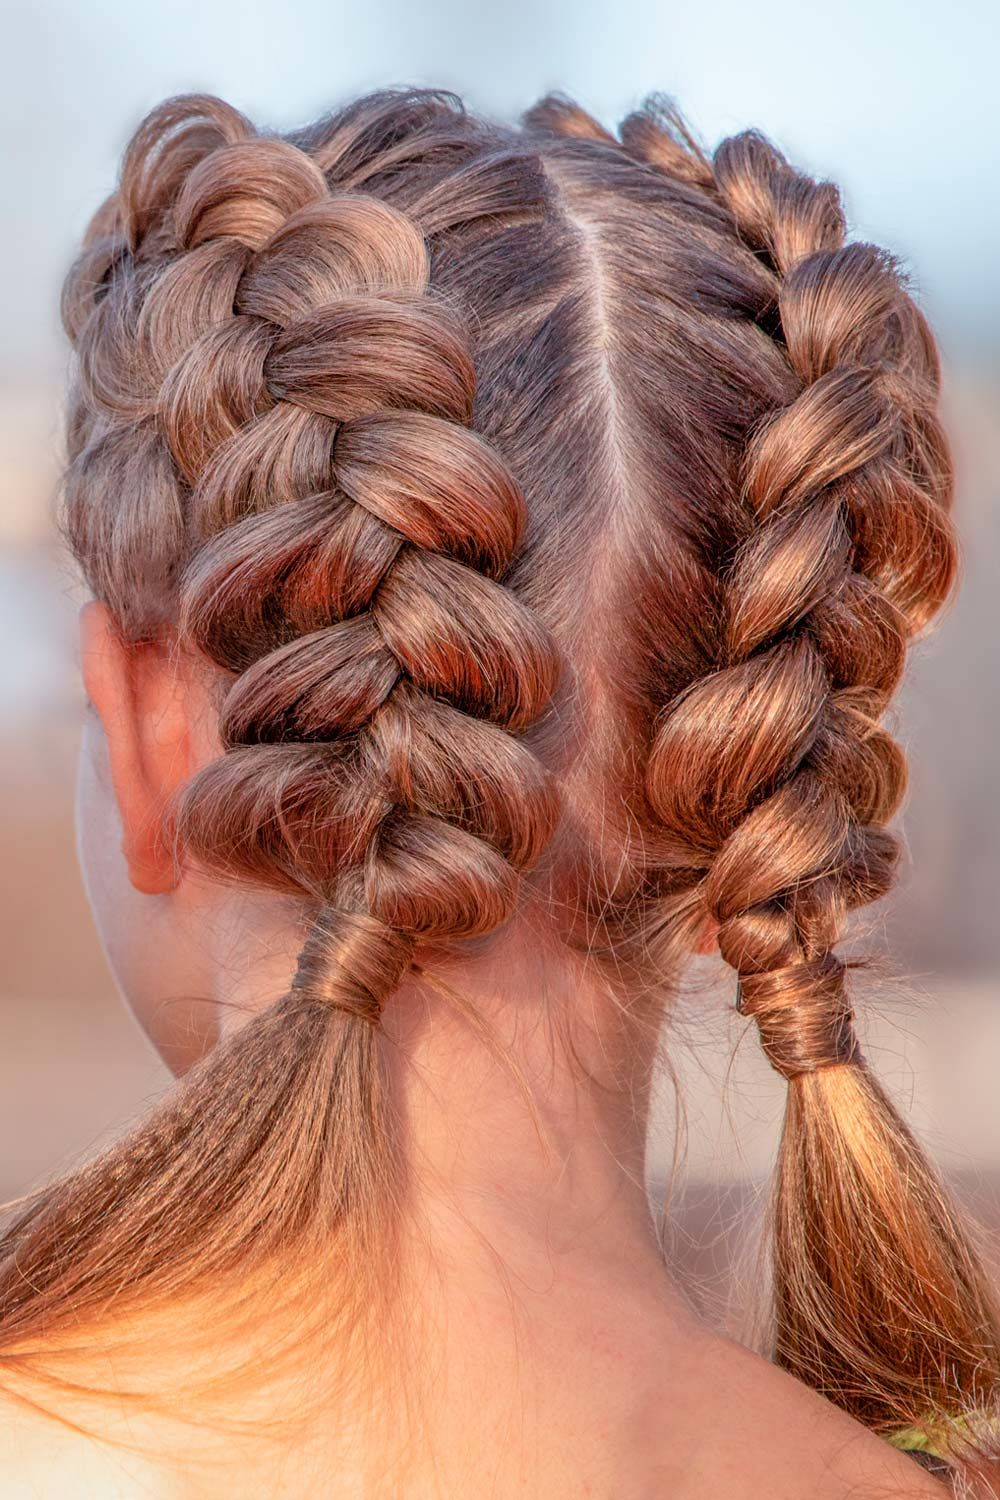 Double Braids Pigtails